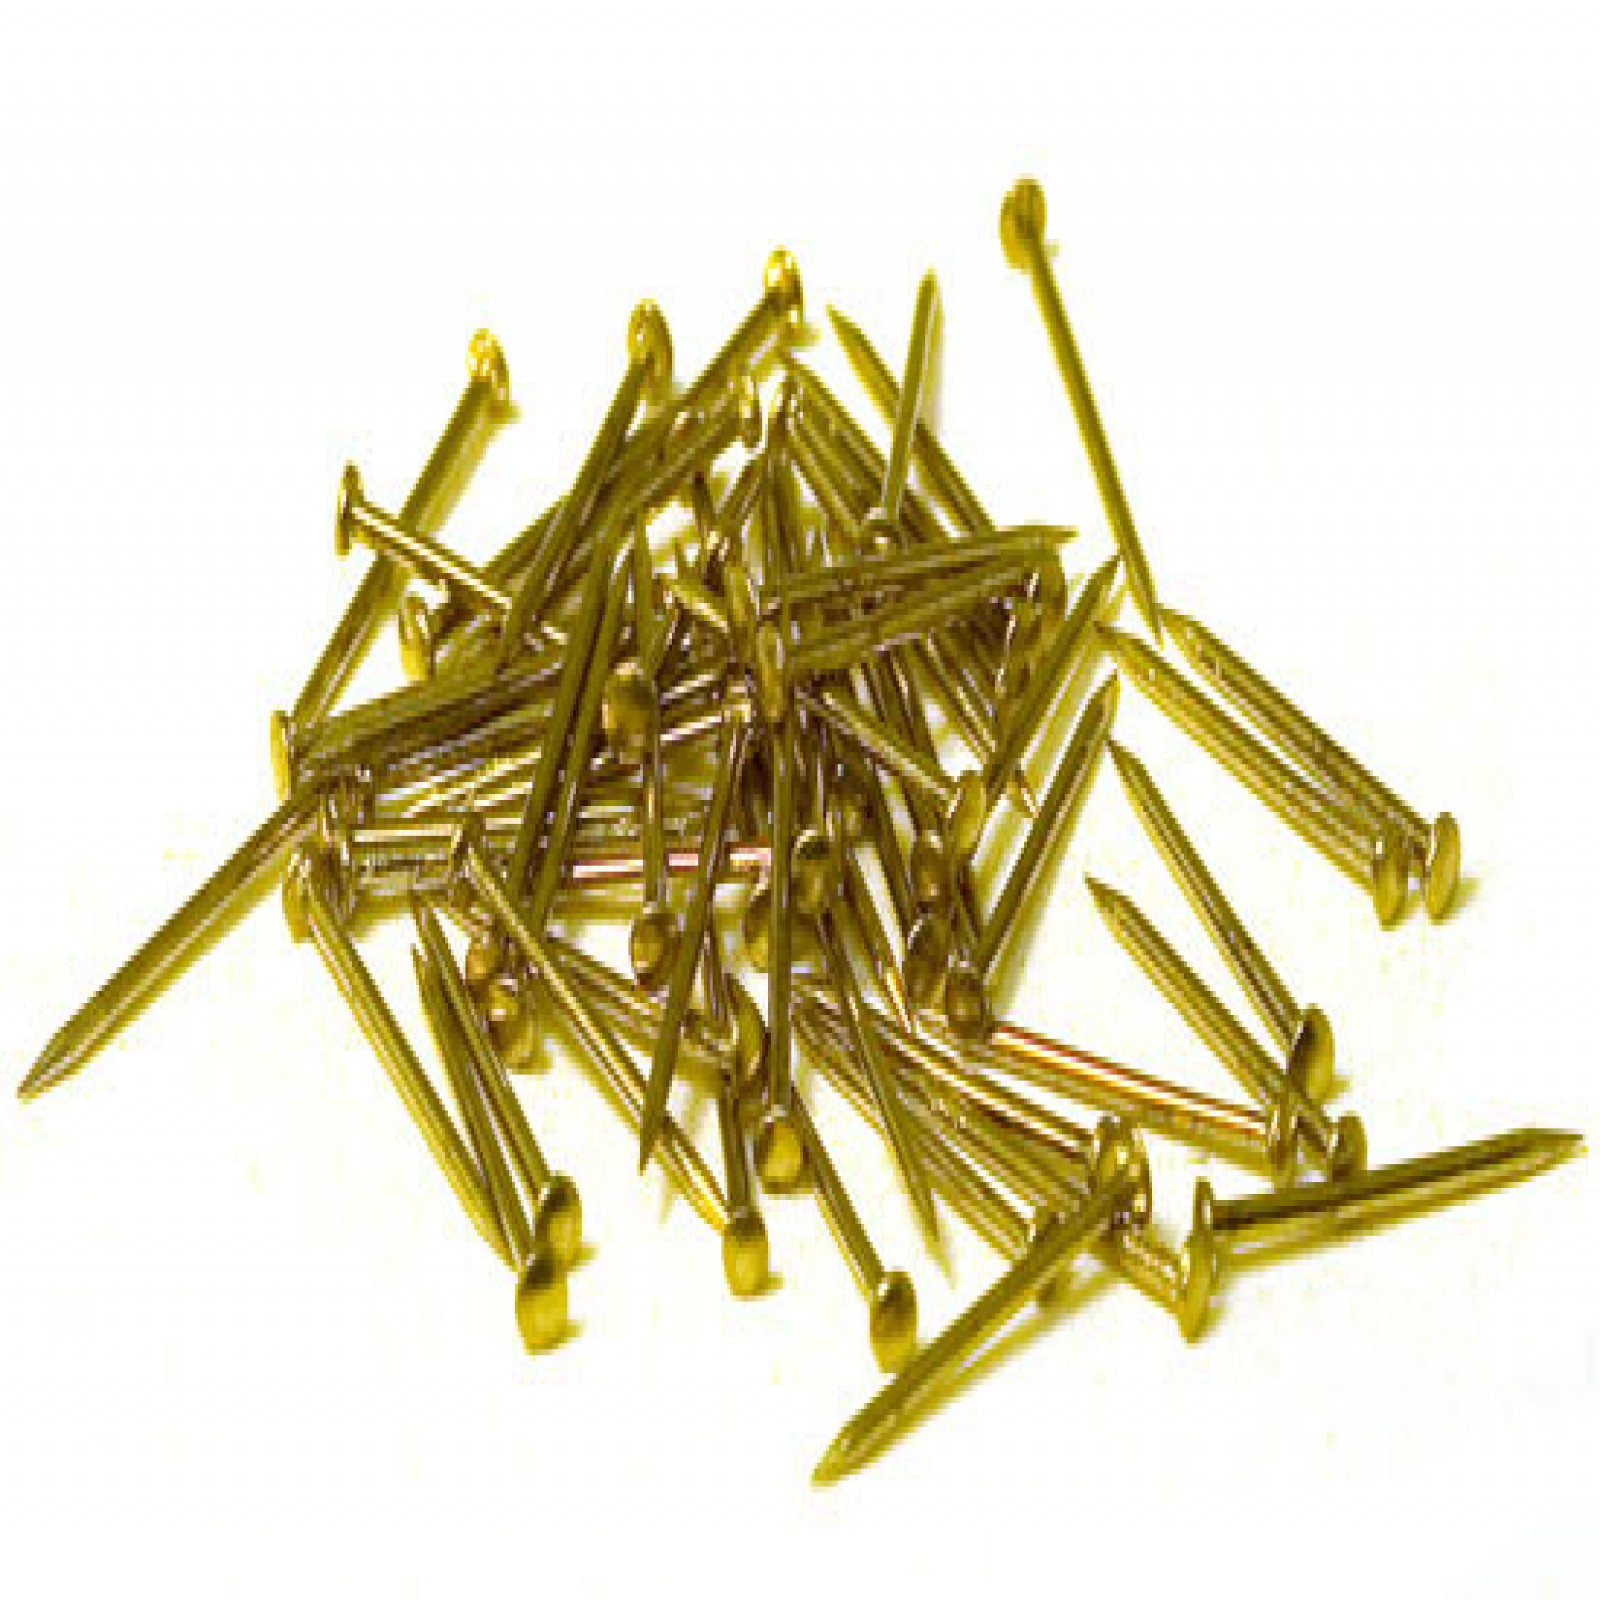 NAILS,BR .028 X 5/16  (.7 X 8MM) 200PCS